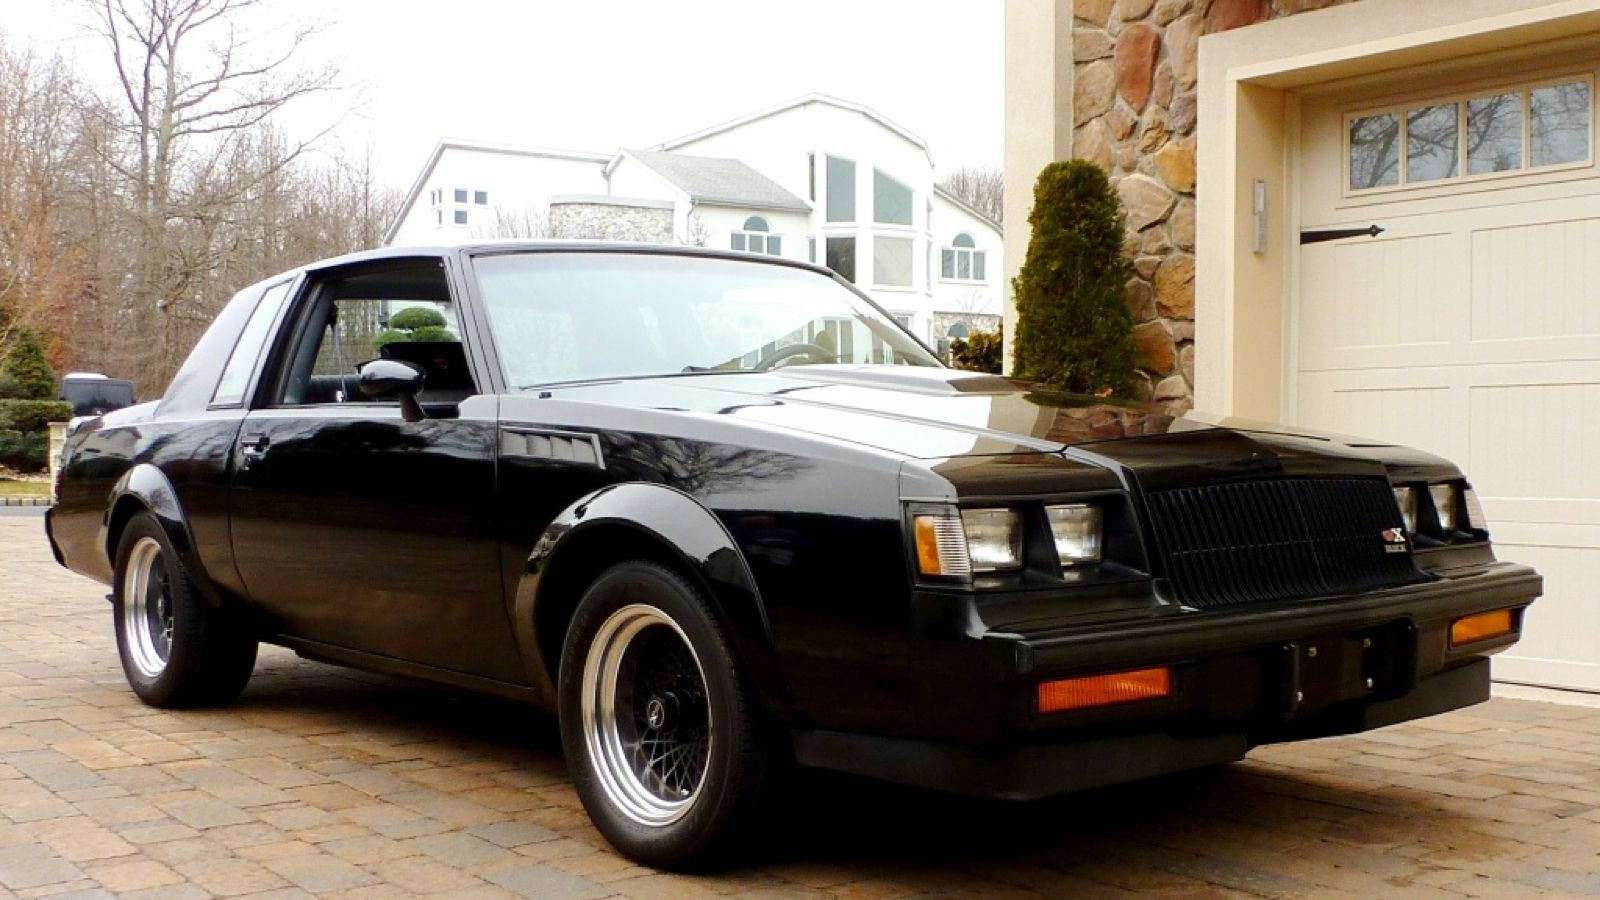 Essentially a buick regal grand national with a huge turbocharged v6 engine and an astronomical amount